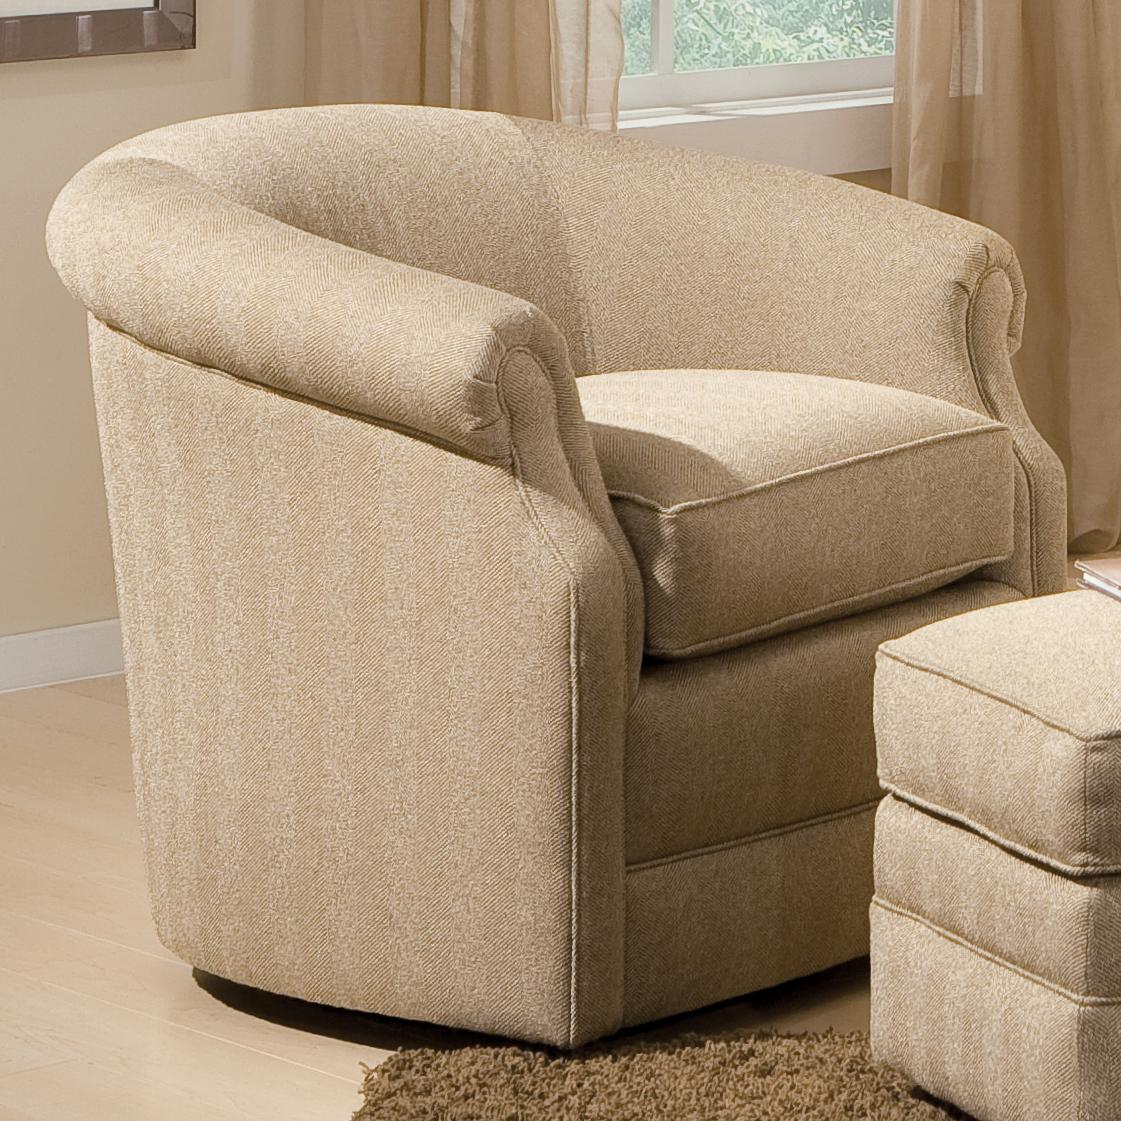 Accent Chairs and Ottomans SB Barrel Swivel Chair by Smith Brothers at Gill Brothers Furniture